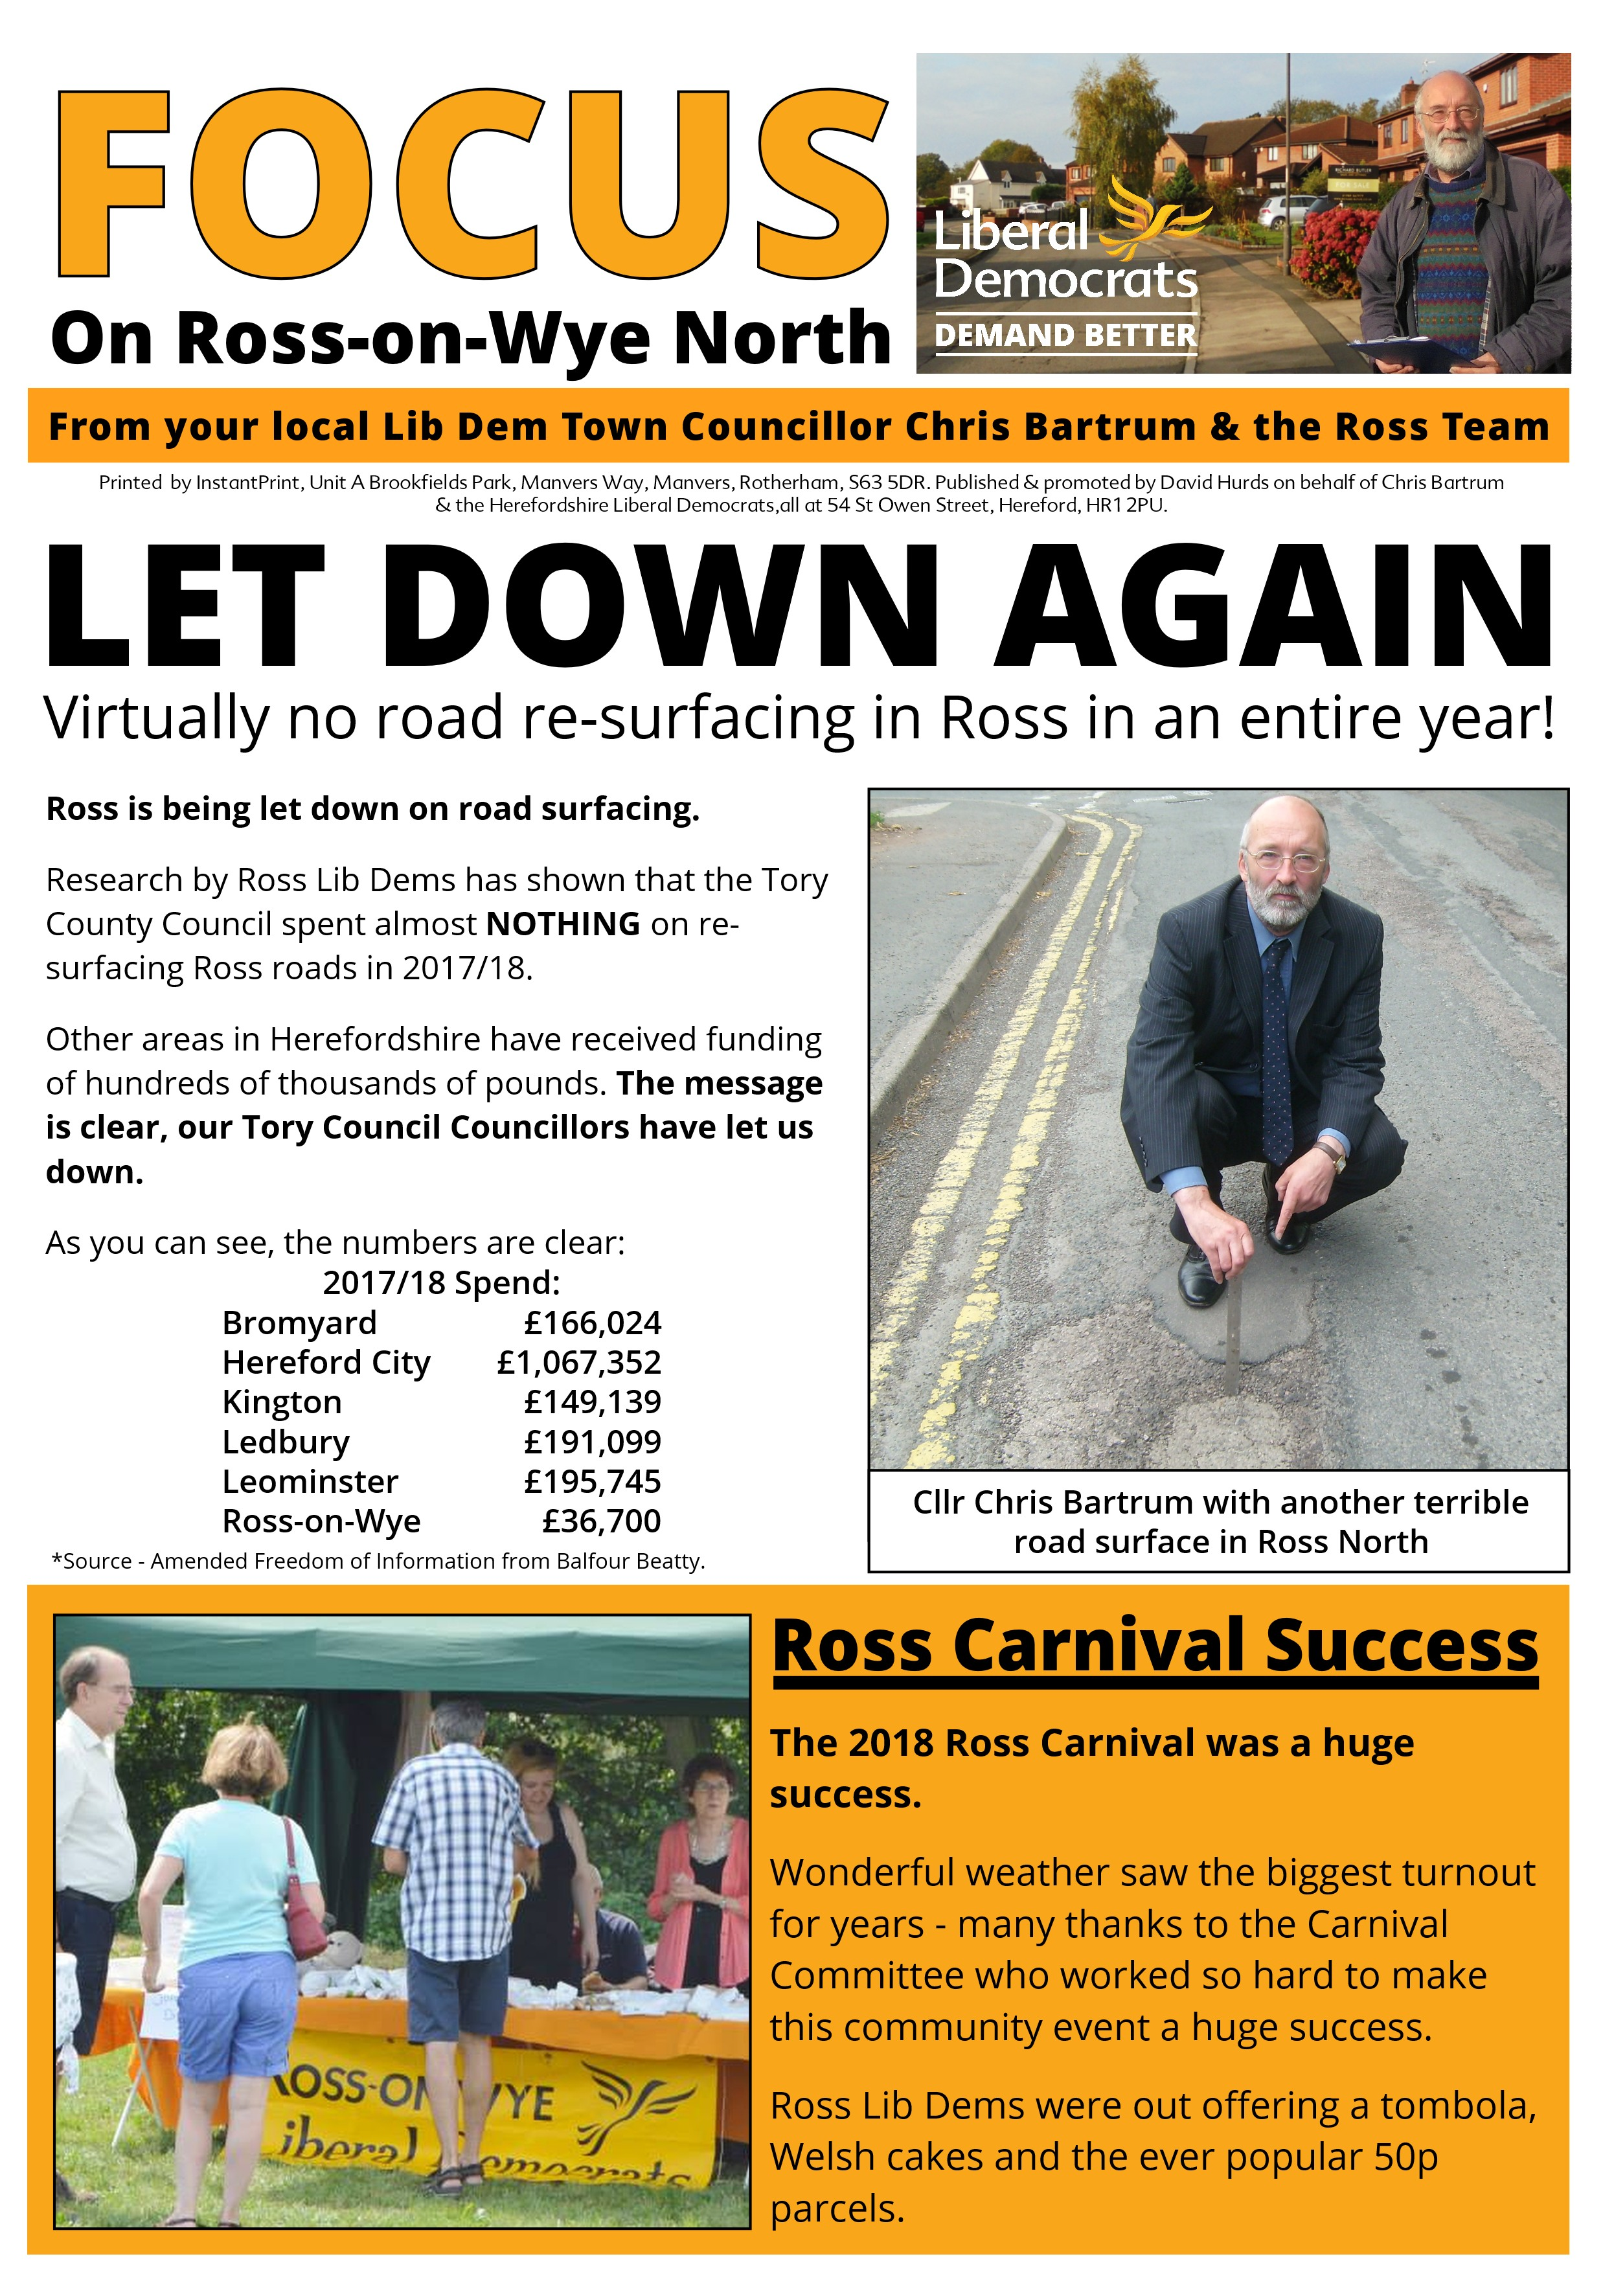 RossNorth2018front.jpg